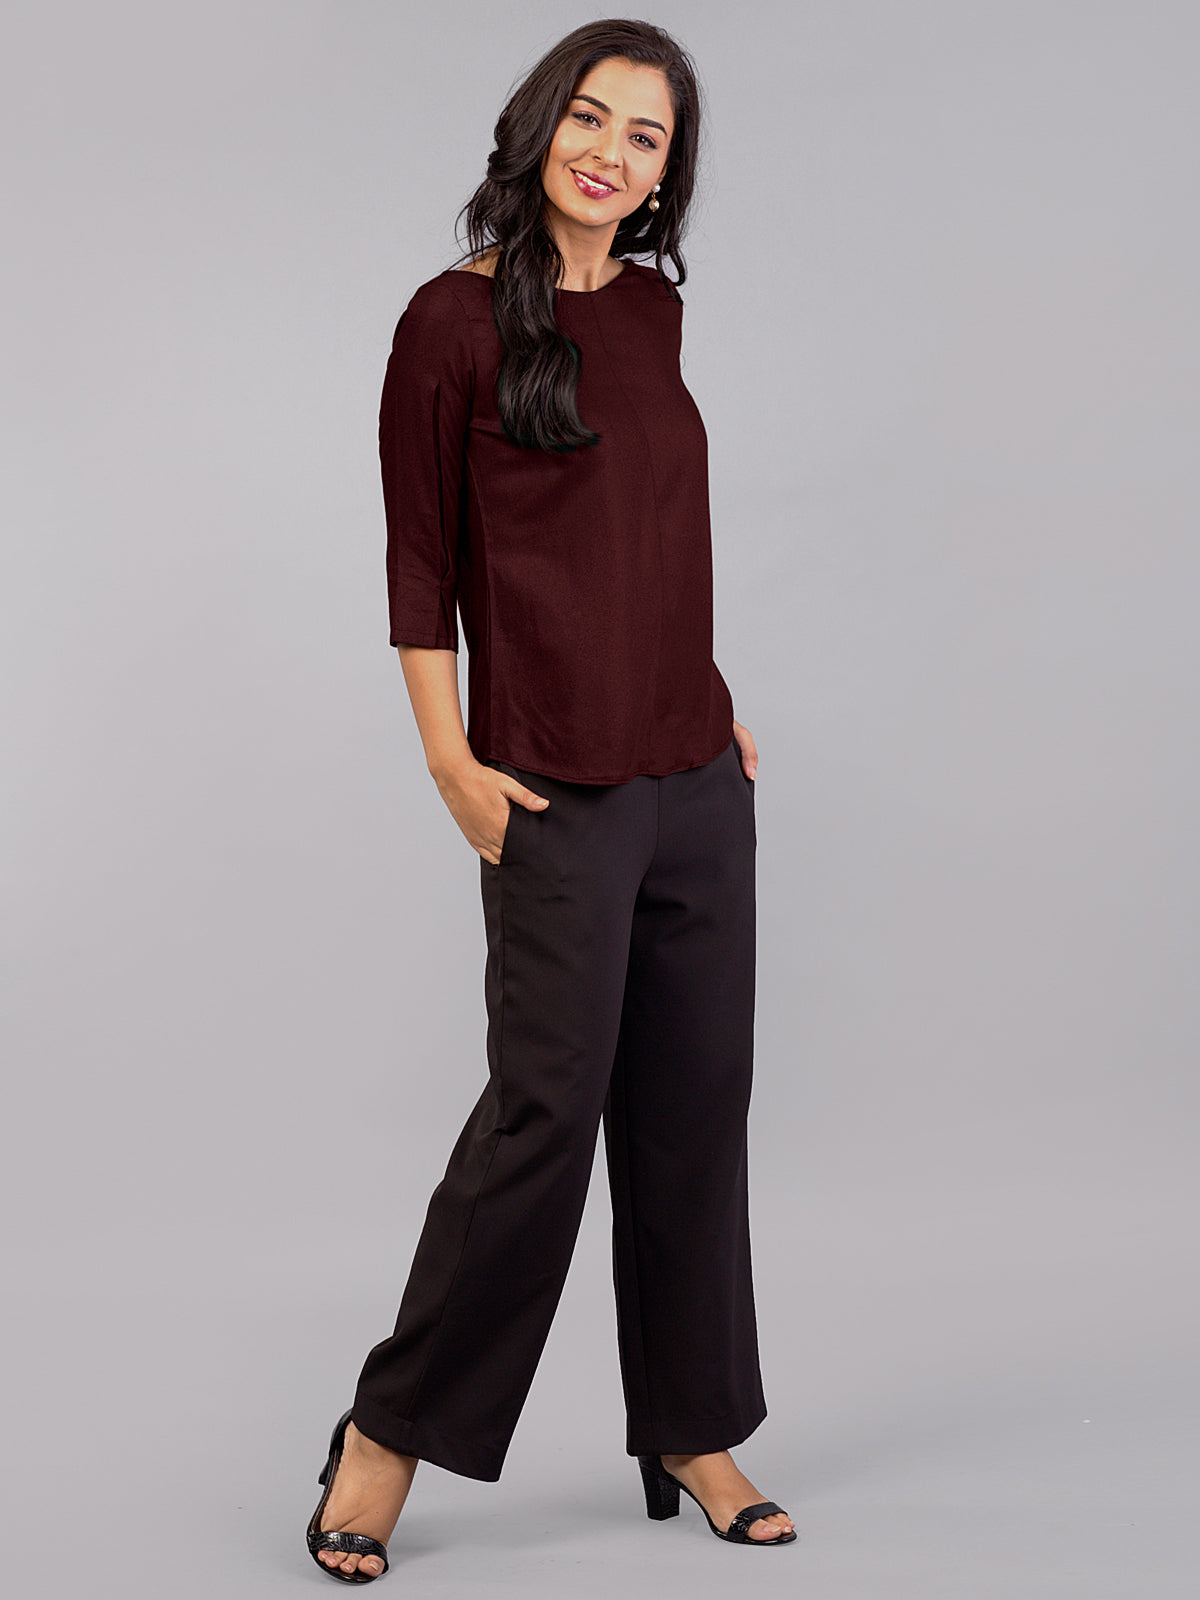 Wide V Neck Top - Maroon